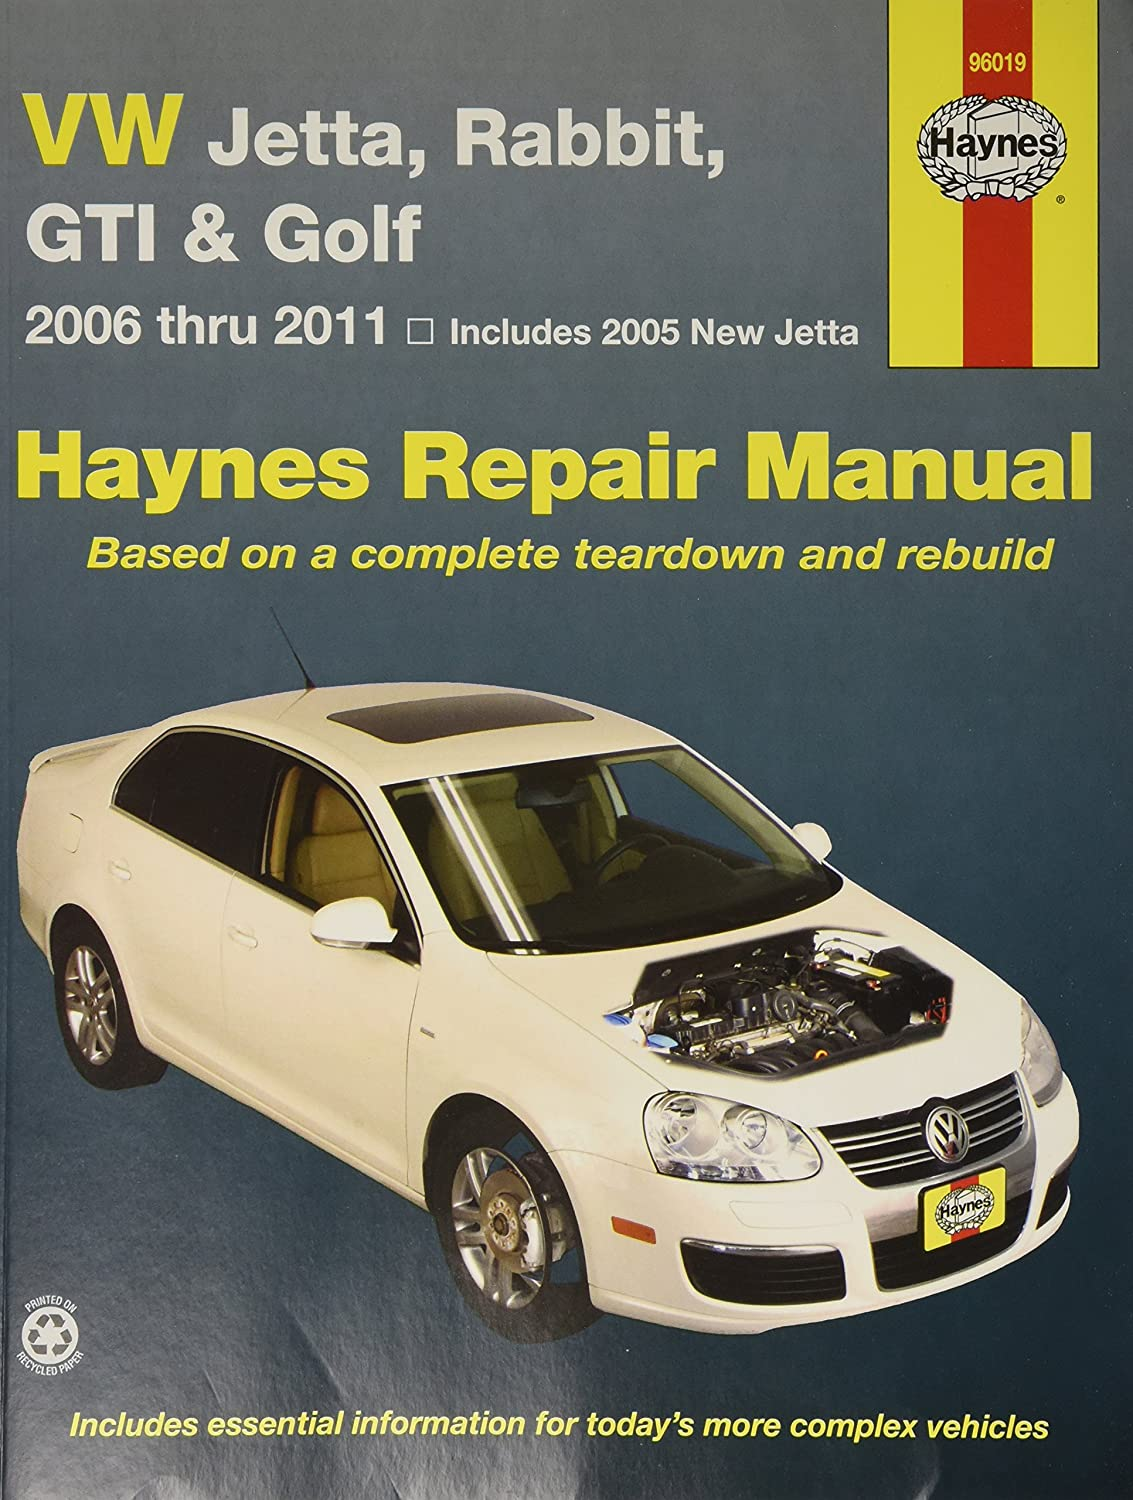 Amazon.com: Haynes Repair Manuals VW Jetta, Rabbit, GTI, GLI & Golf '05-'11  (96019): Automotive